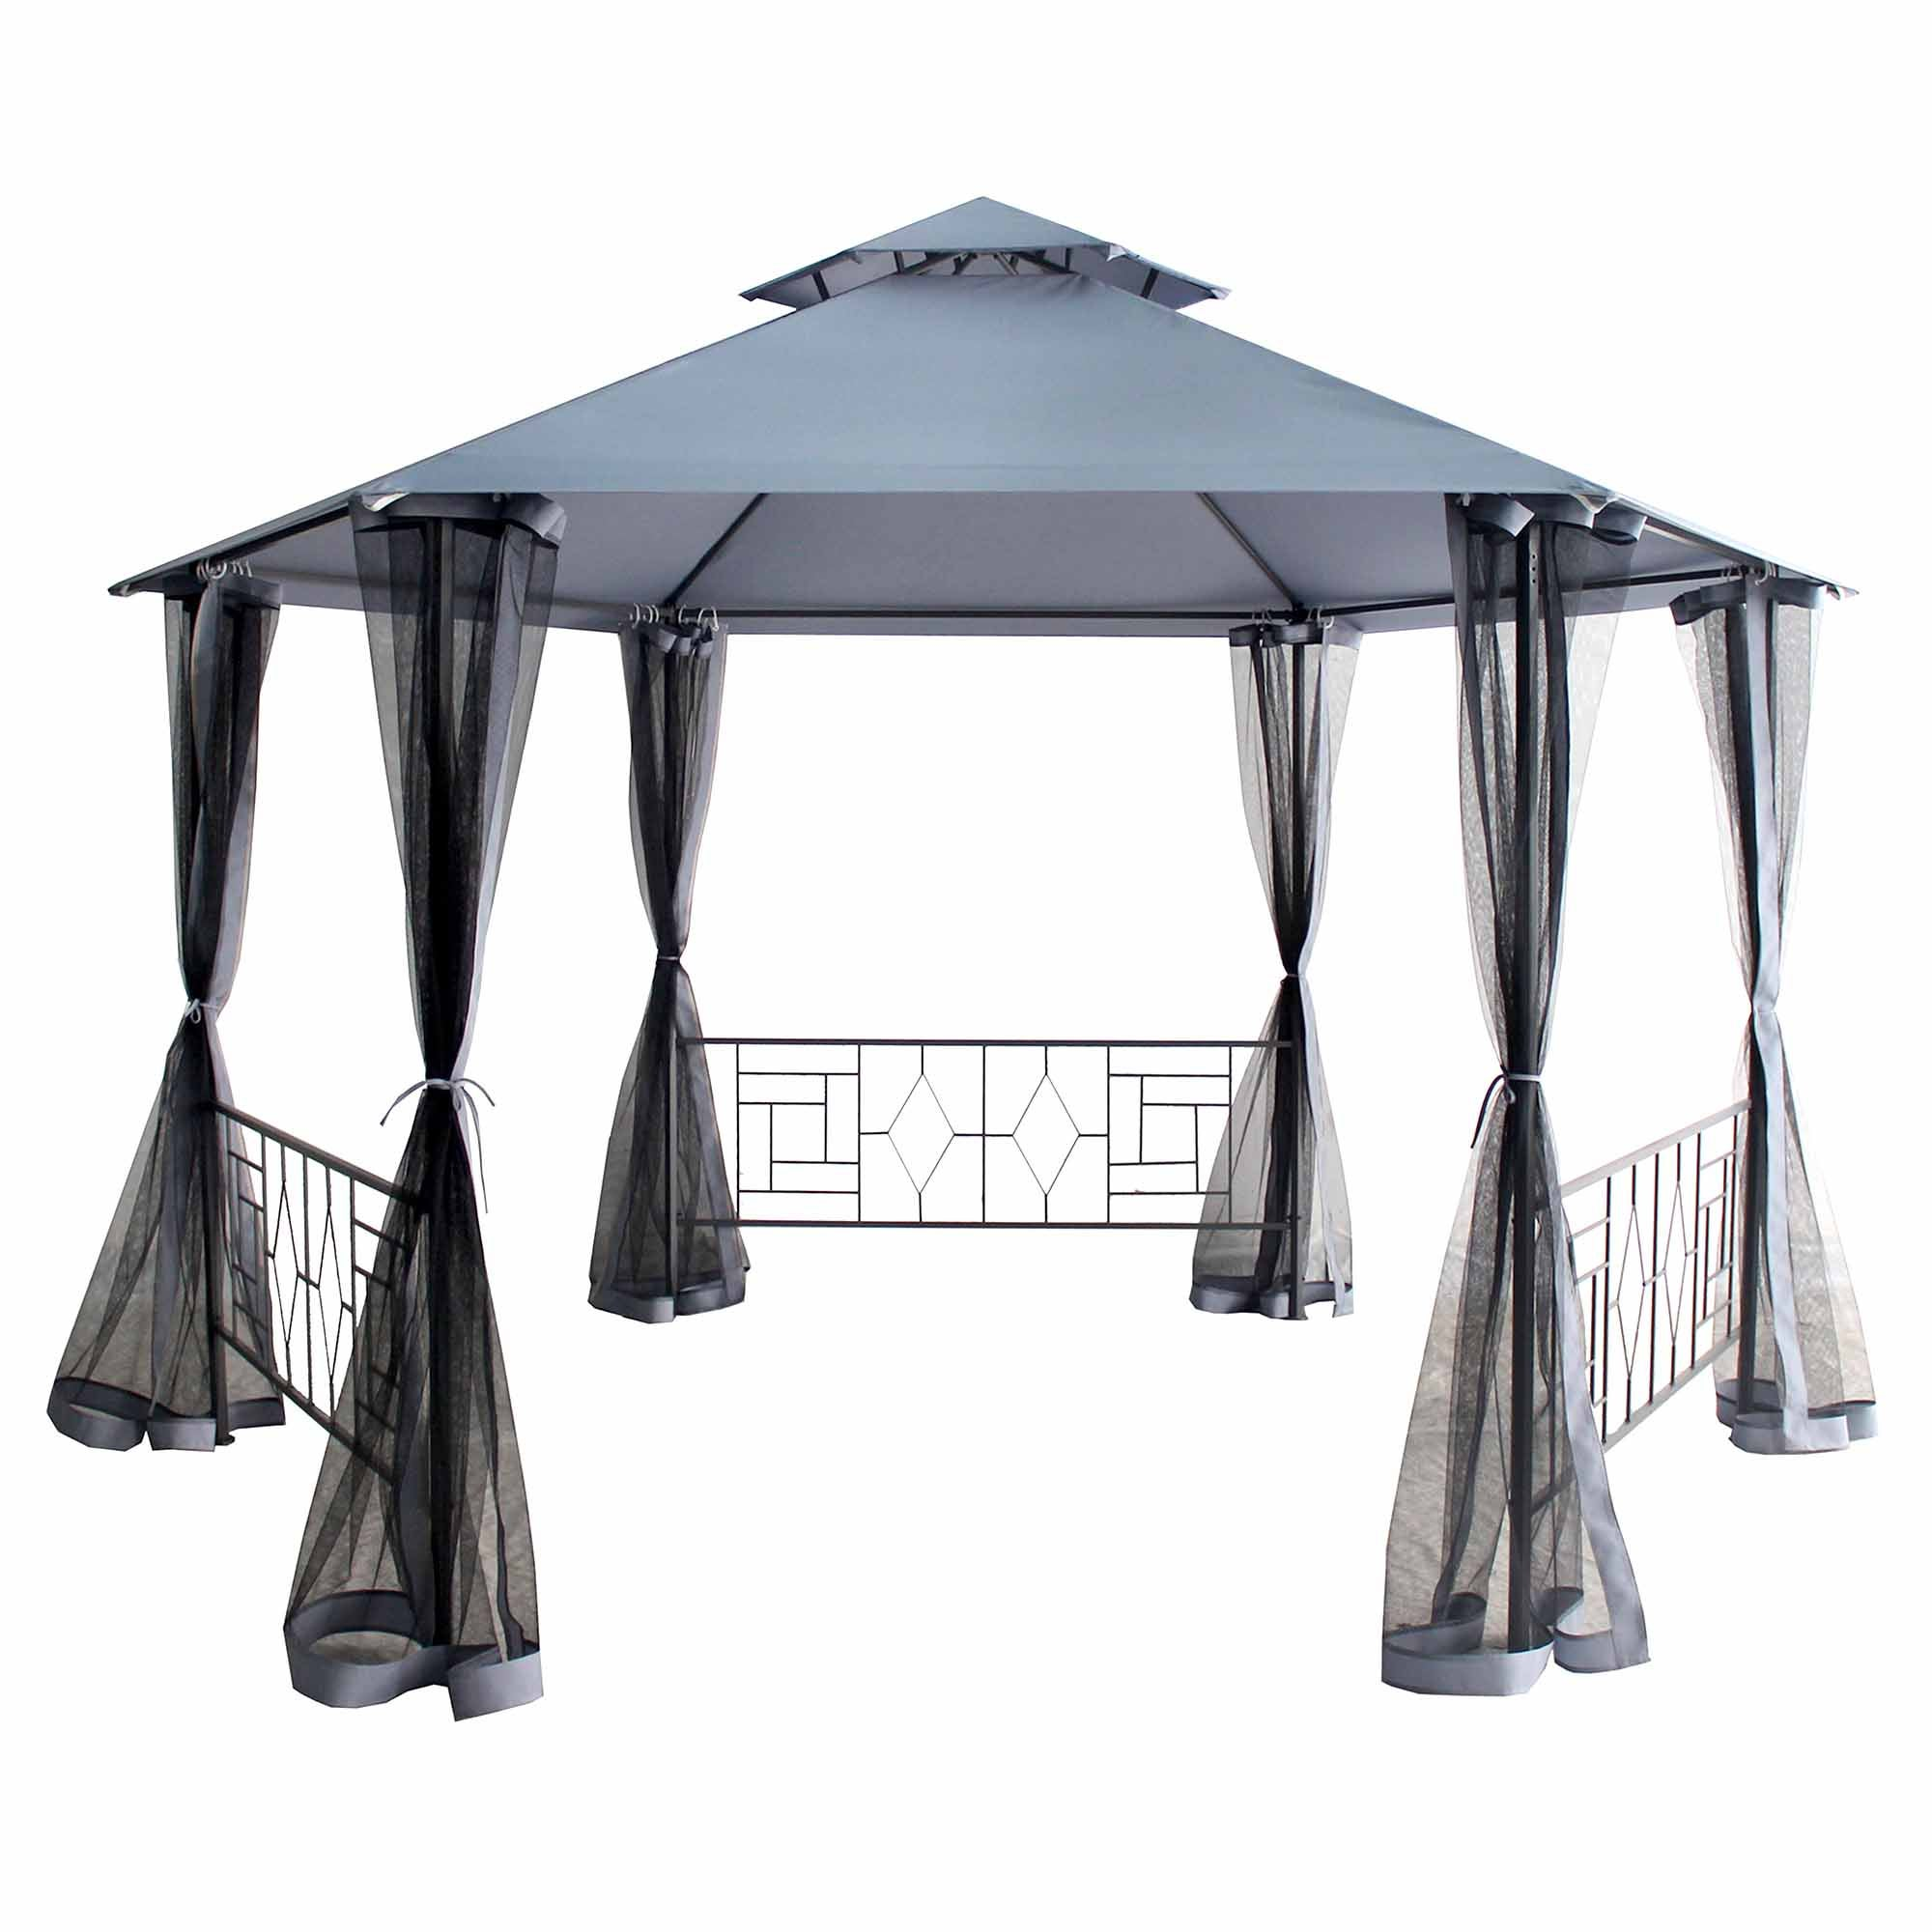 Balinese Hexagonal Gazebo Grey